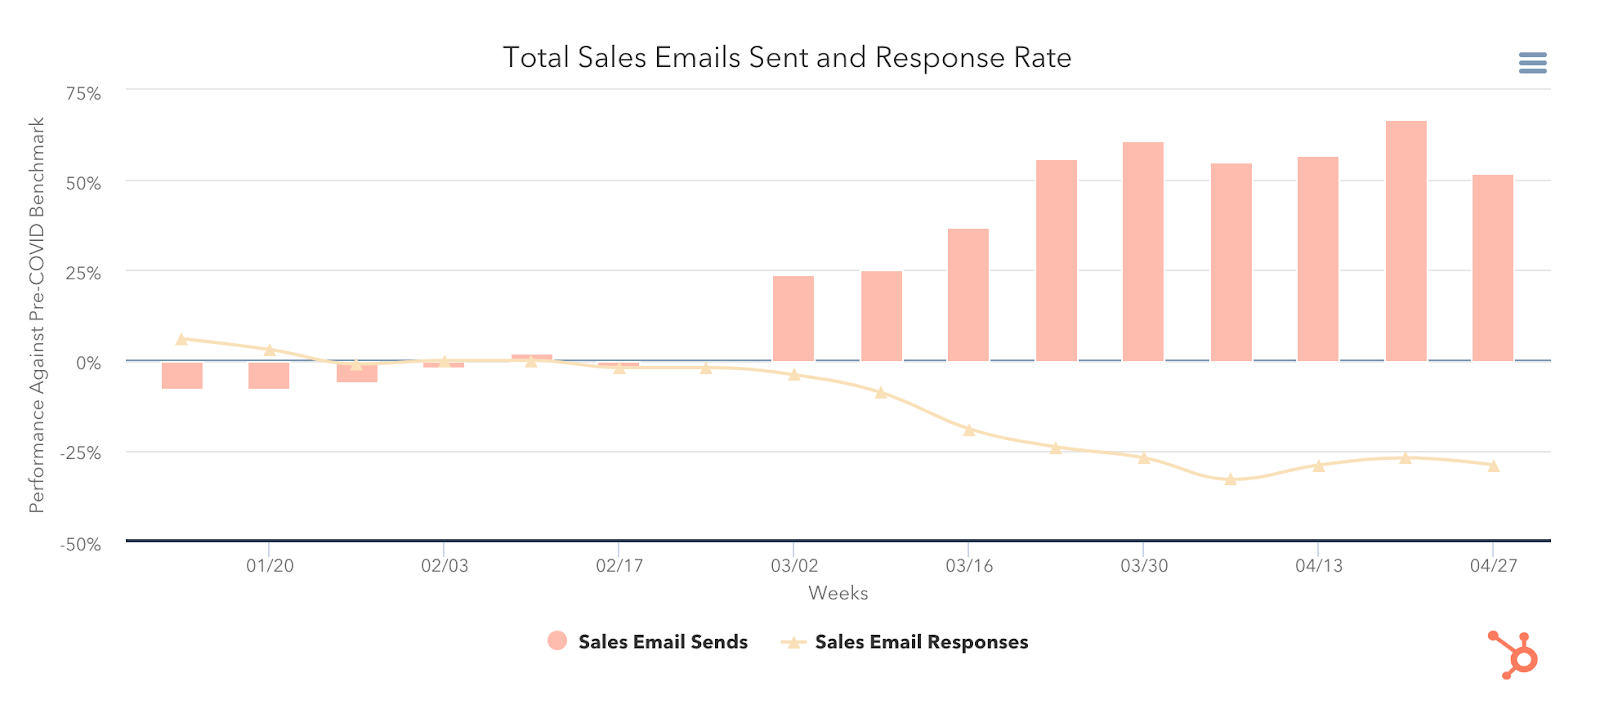 Total sales emails sent